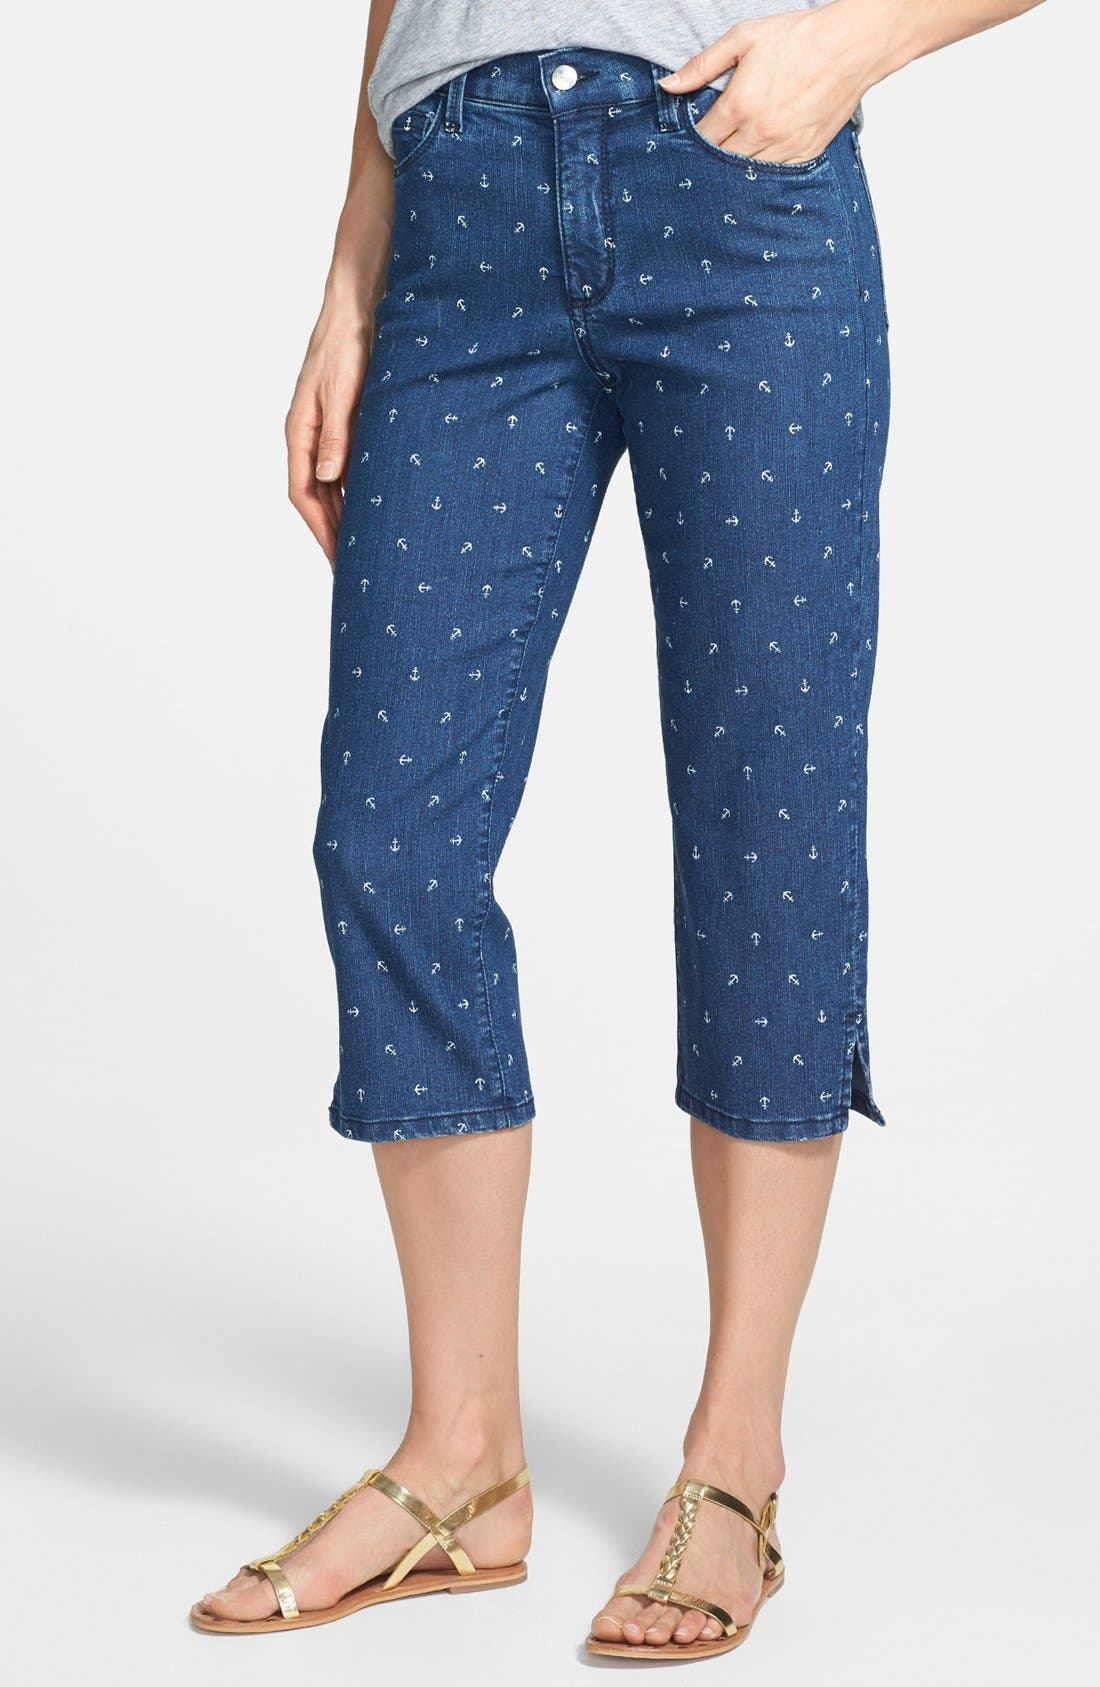 Alternate Image 1 Selected - NYDJ 'Nanette' Print Stretch Crop Jeans (Topeka)